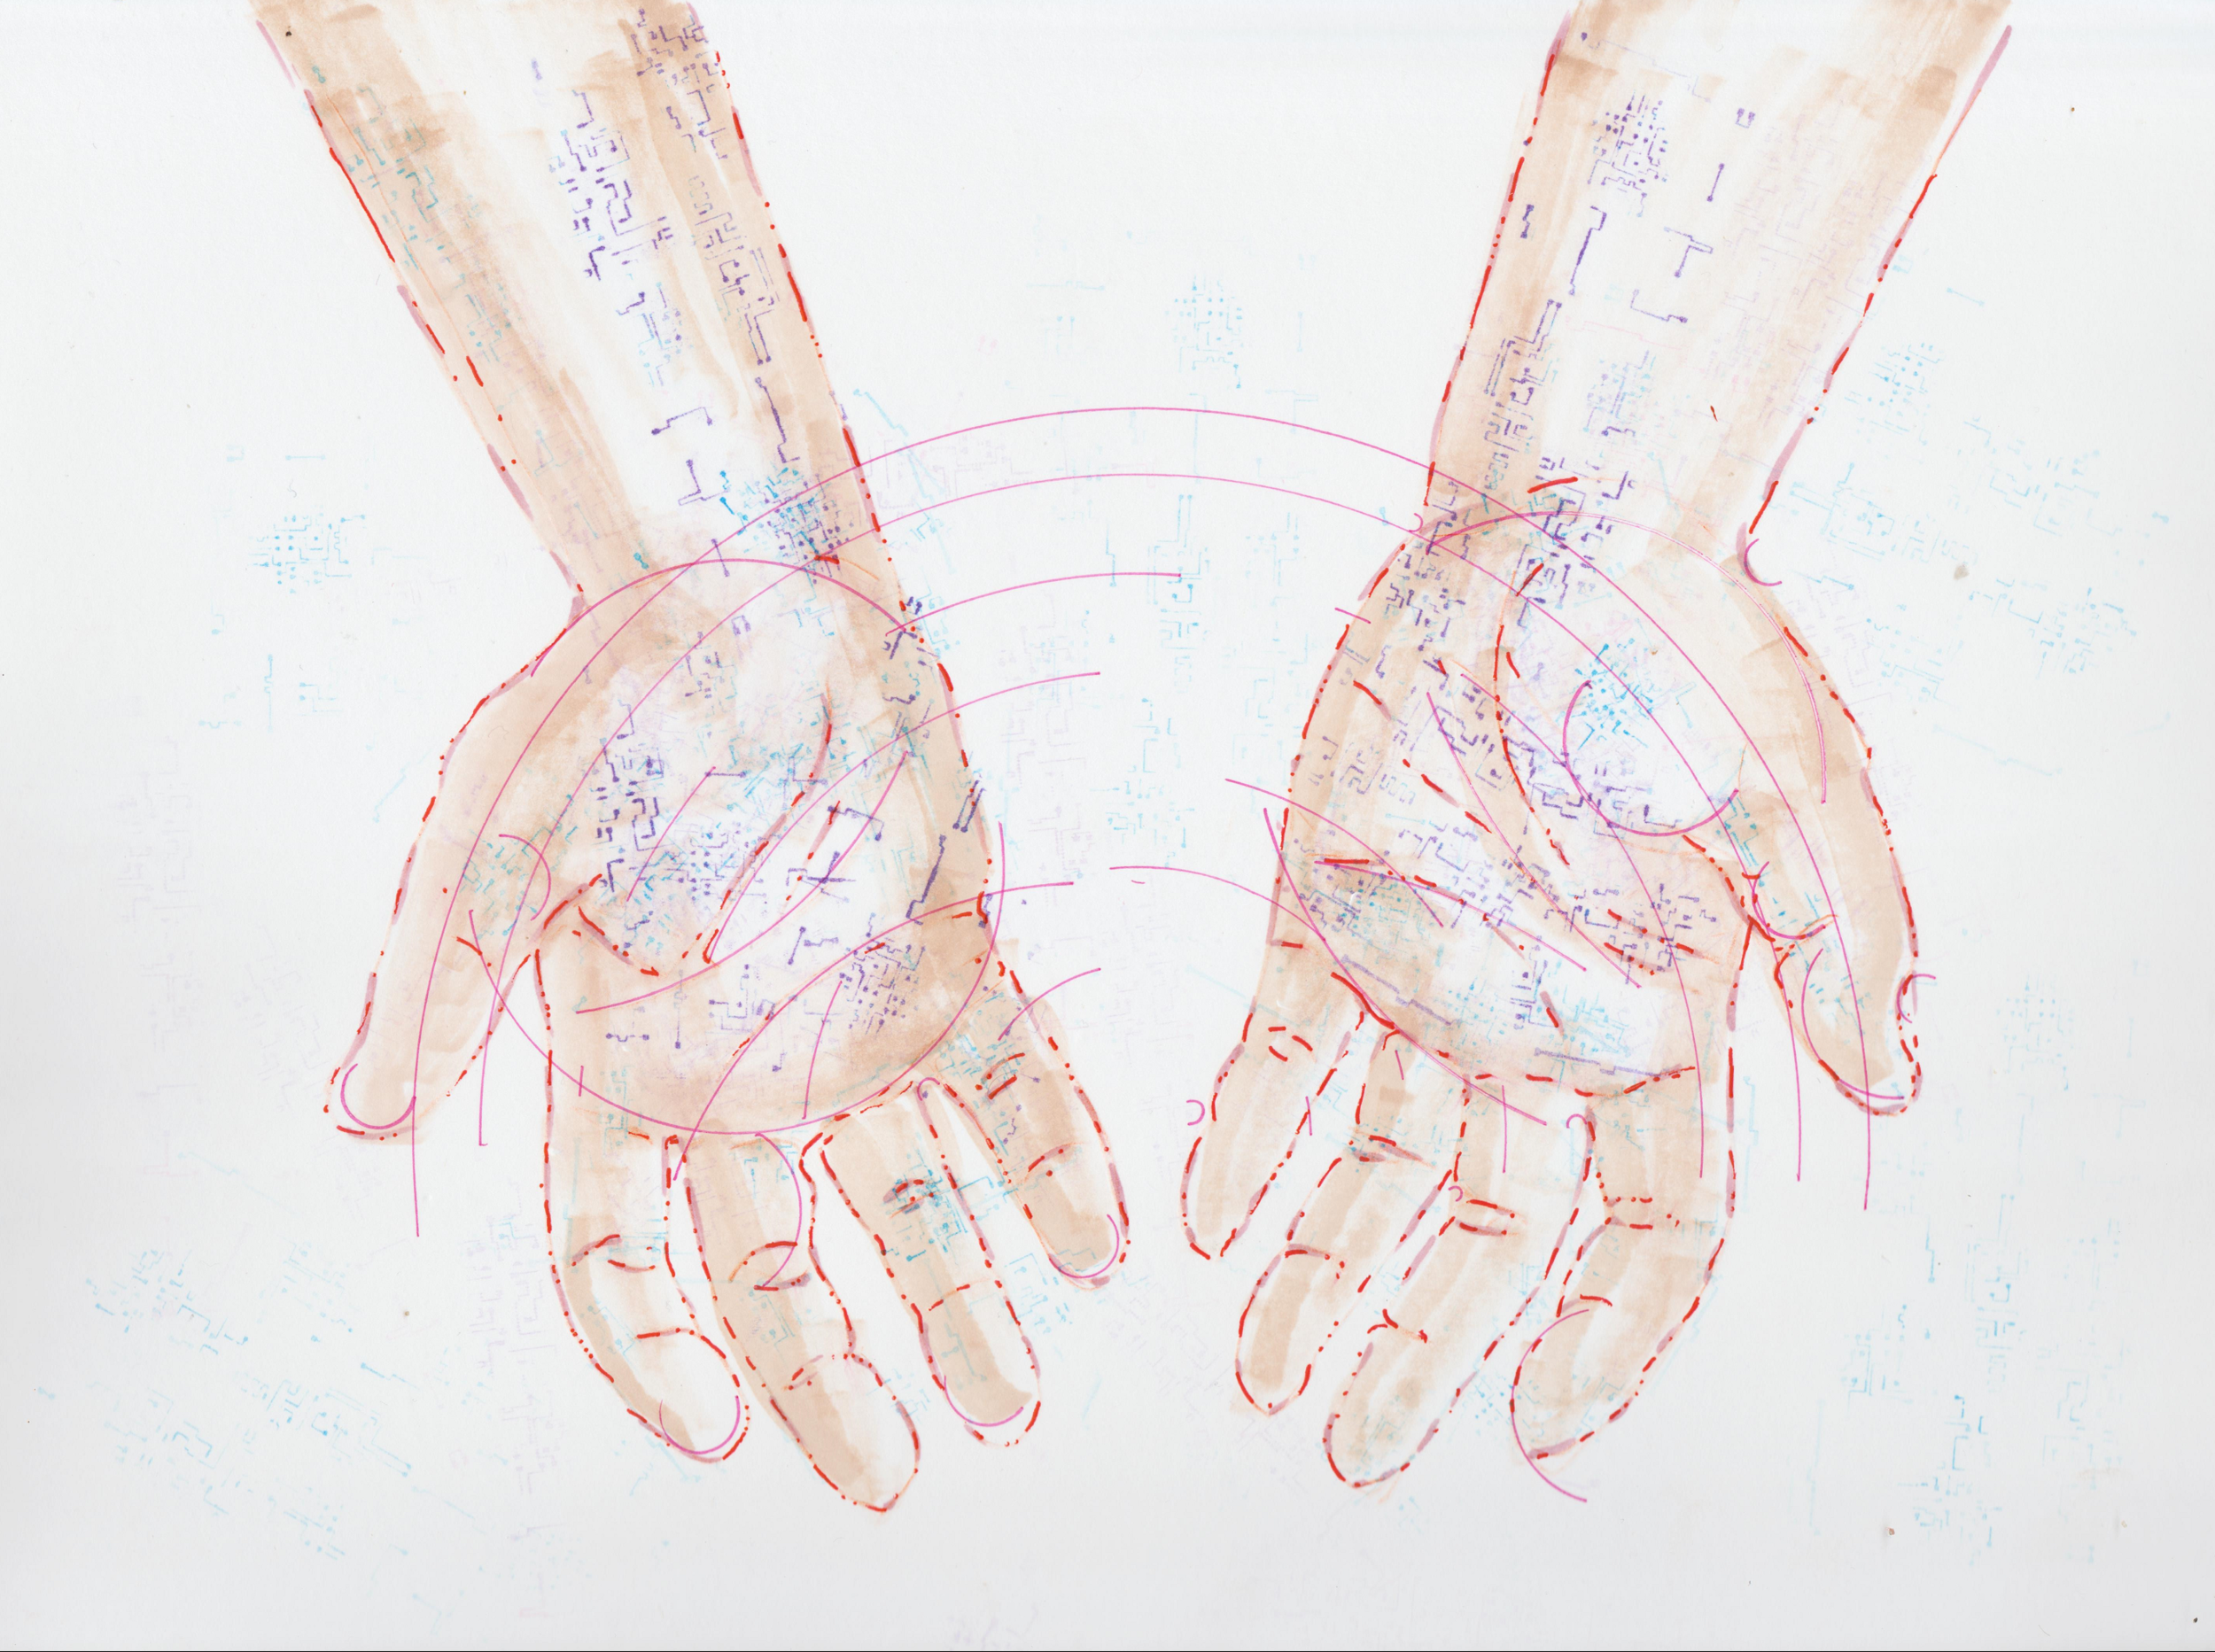 Illustration by Tiffany Gomez. Tiffani Gomez is a native Washington, DC artist.You can find her on  Instagram and  Tumblr .  [Image description:An illustration of open, cupped hands, facing downwards, outlined in red, with hints of circuitboard-like veins peaking through.]